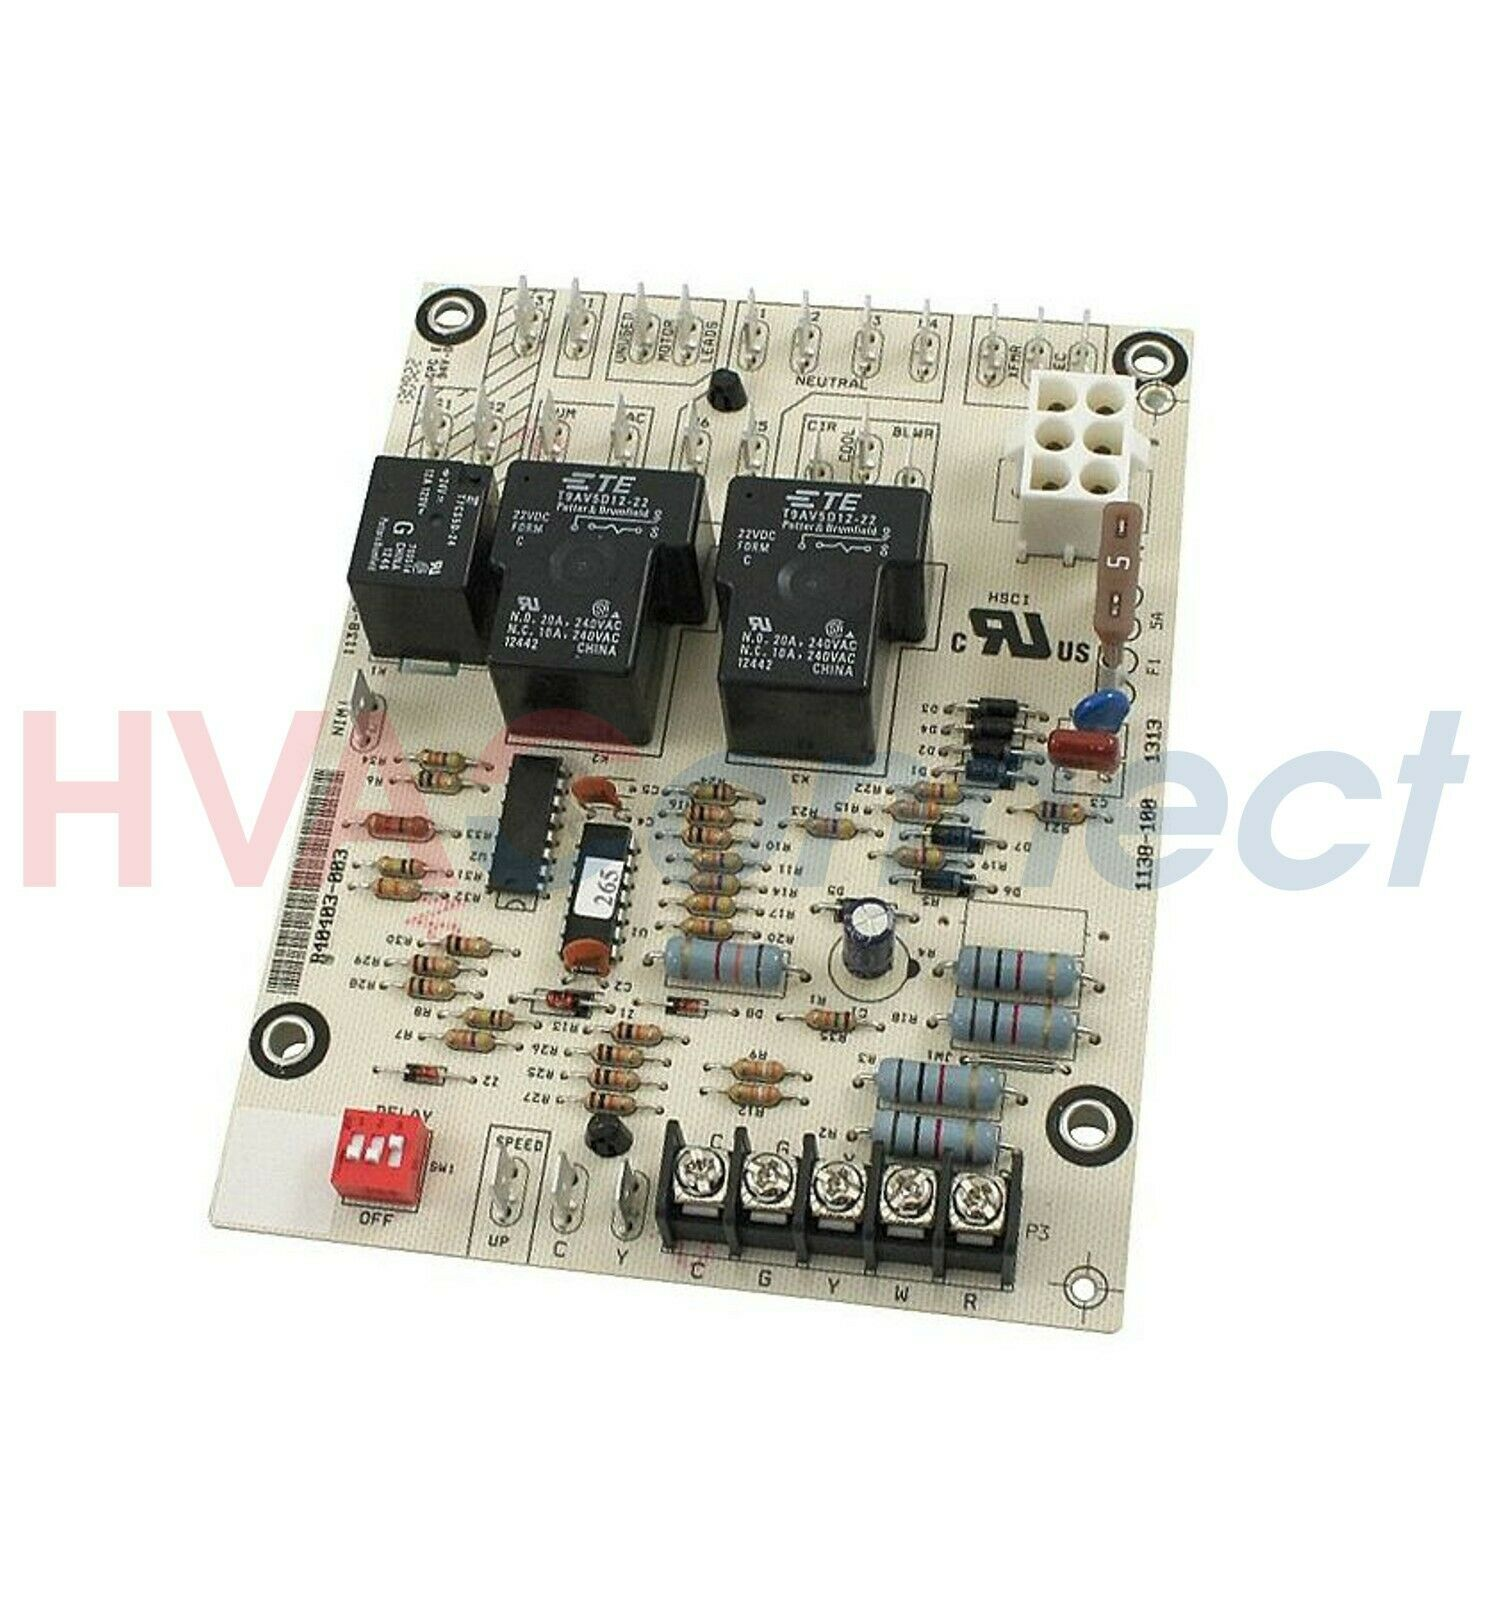 Honeywell St9120g 4012 Wiring Diagram Trusted Diagrams Ahp60d3xh21a Circuit Board Furnace Fan Control St9120c2010 99 23